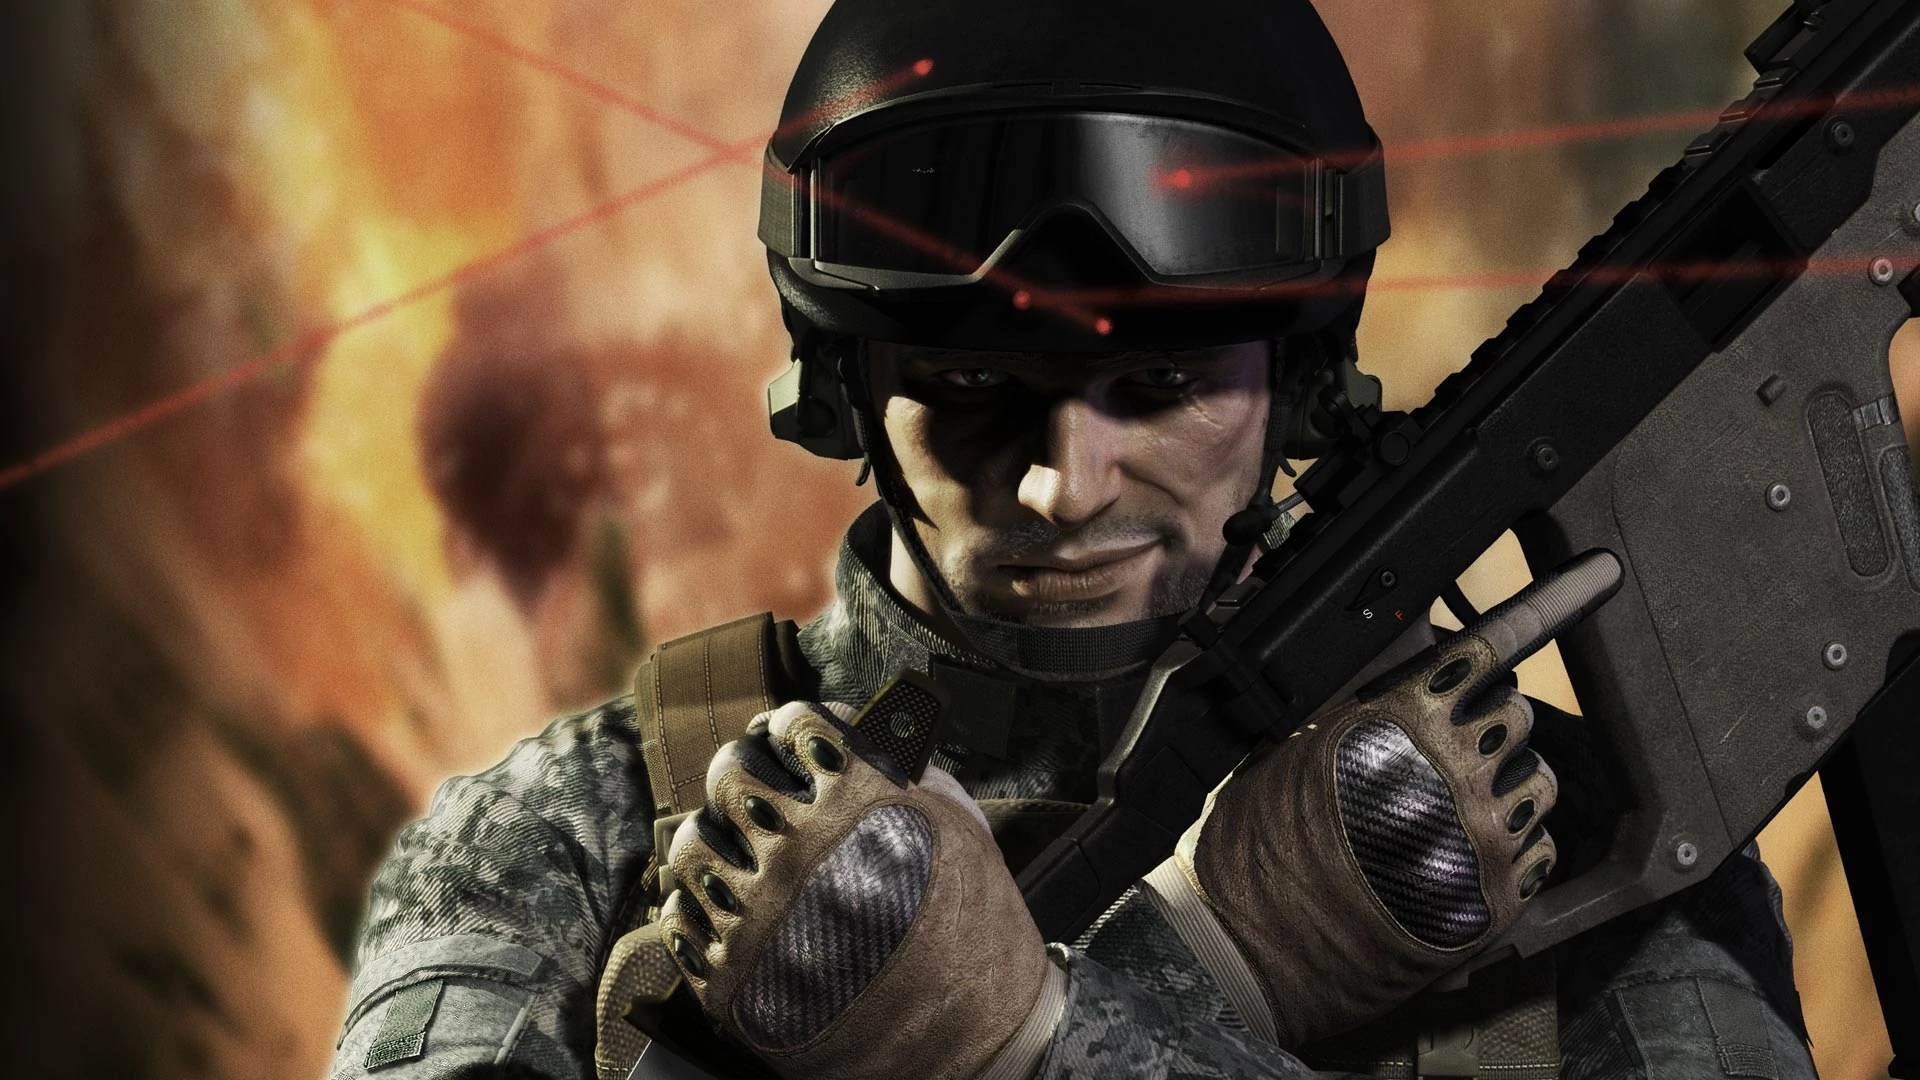 Halloween Wallpaper Hd Soldier Front 2 Last Man Standing Steam Trading Cards